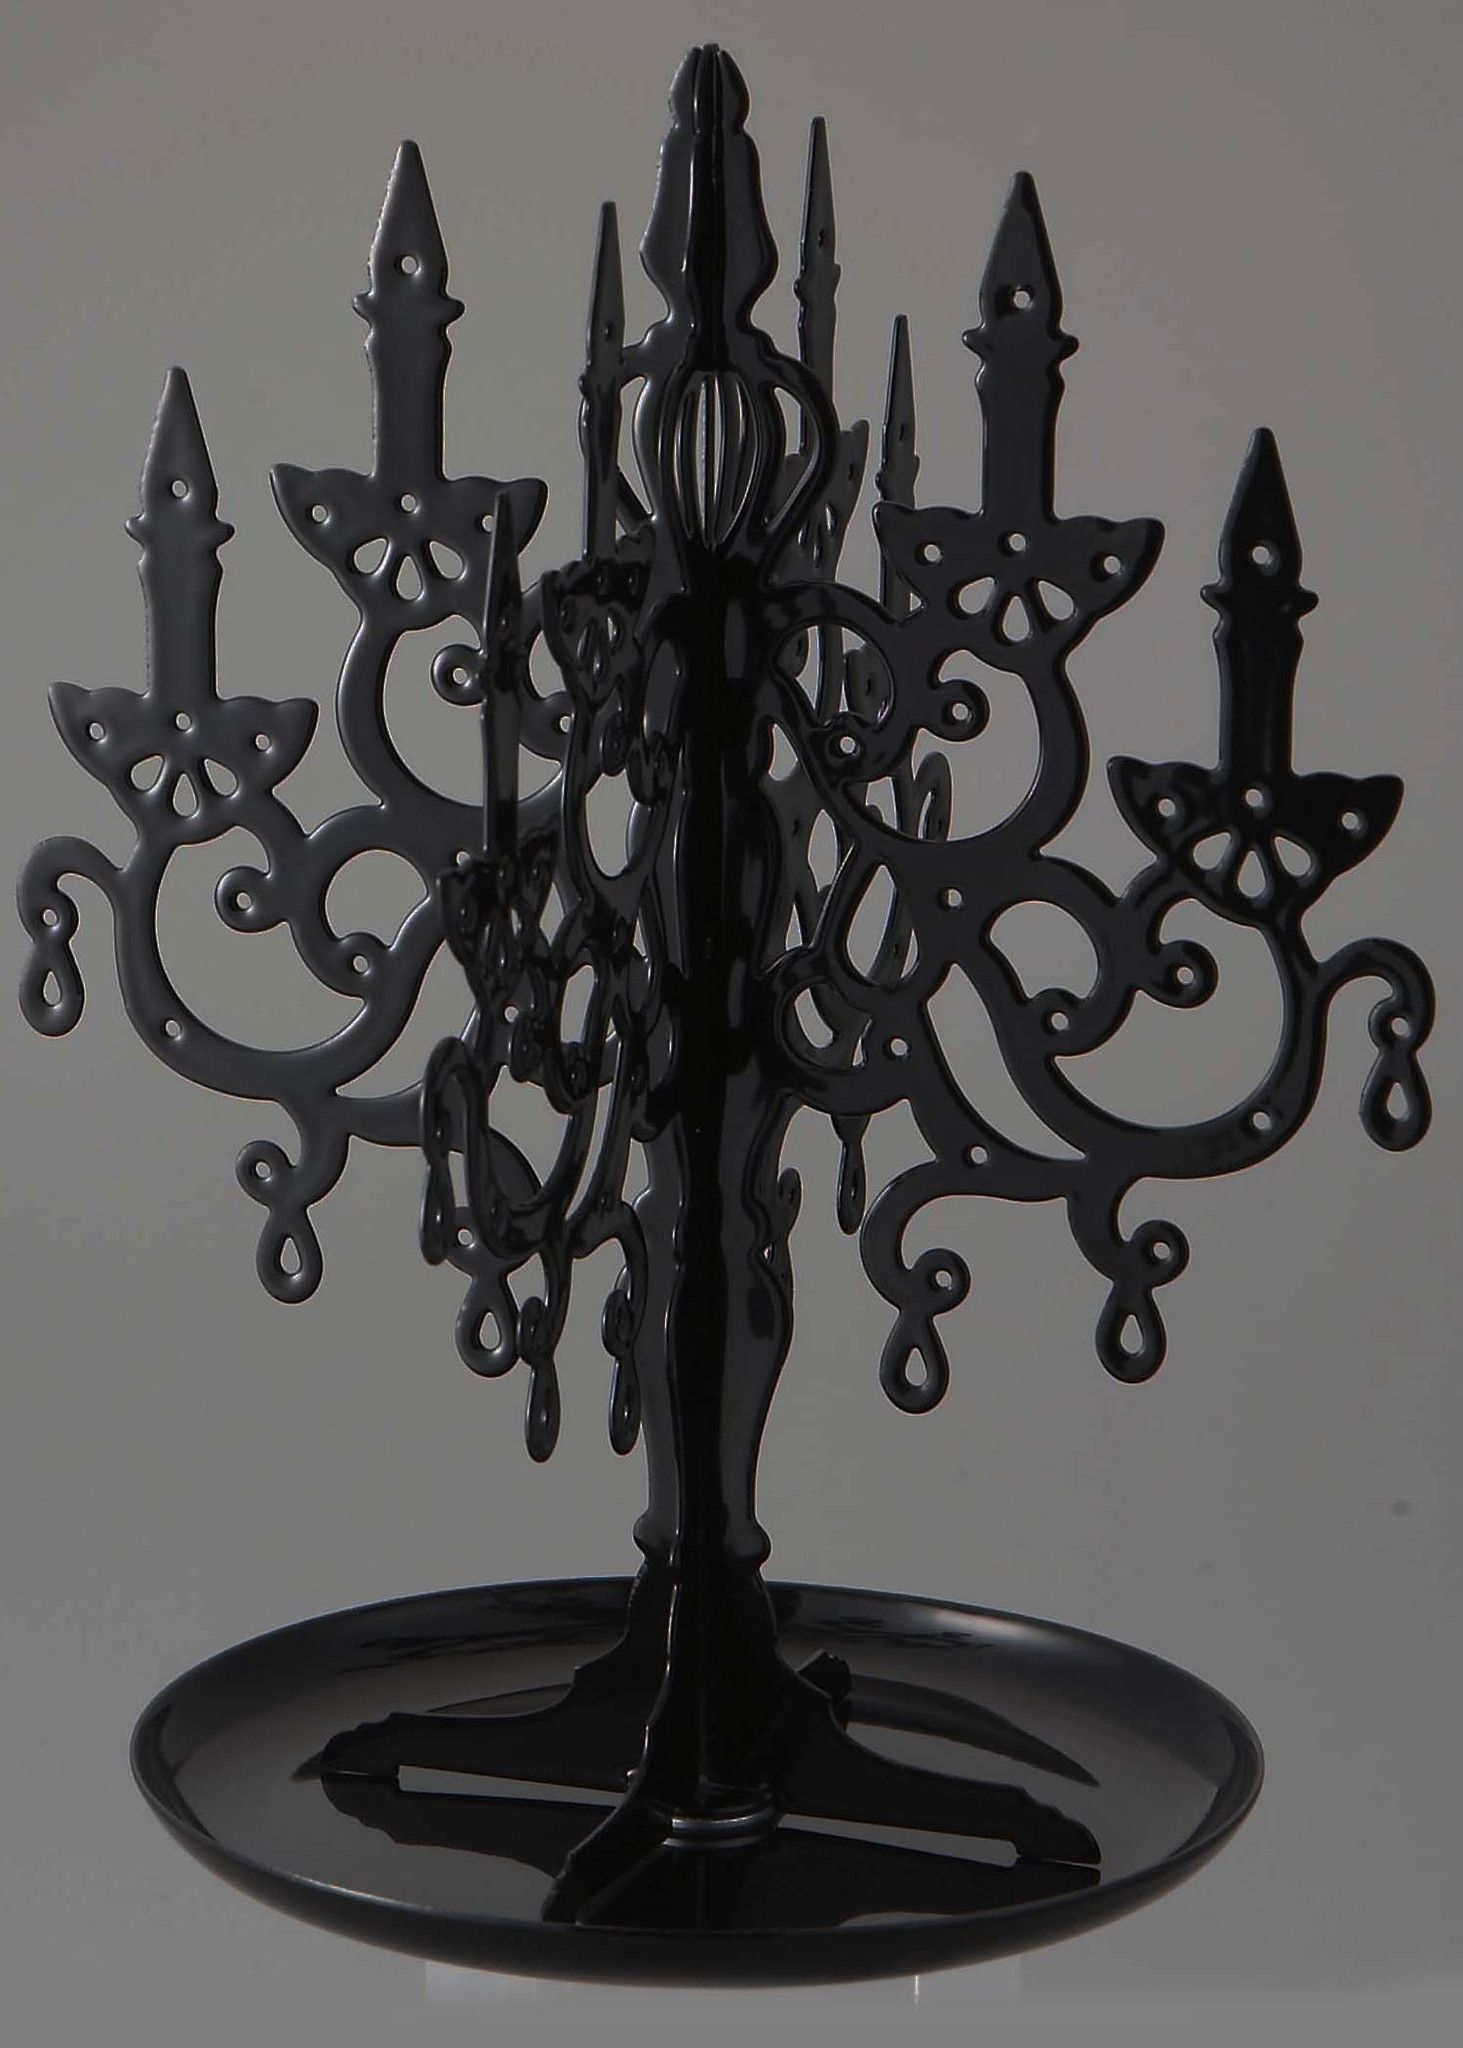 This unique Chandelier jewelry stand is hand made with solid black